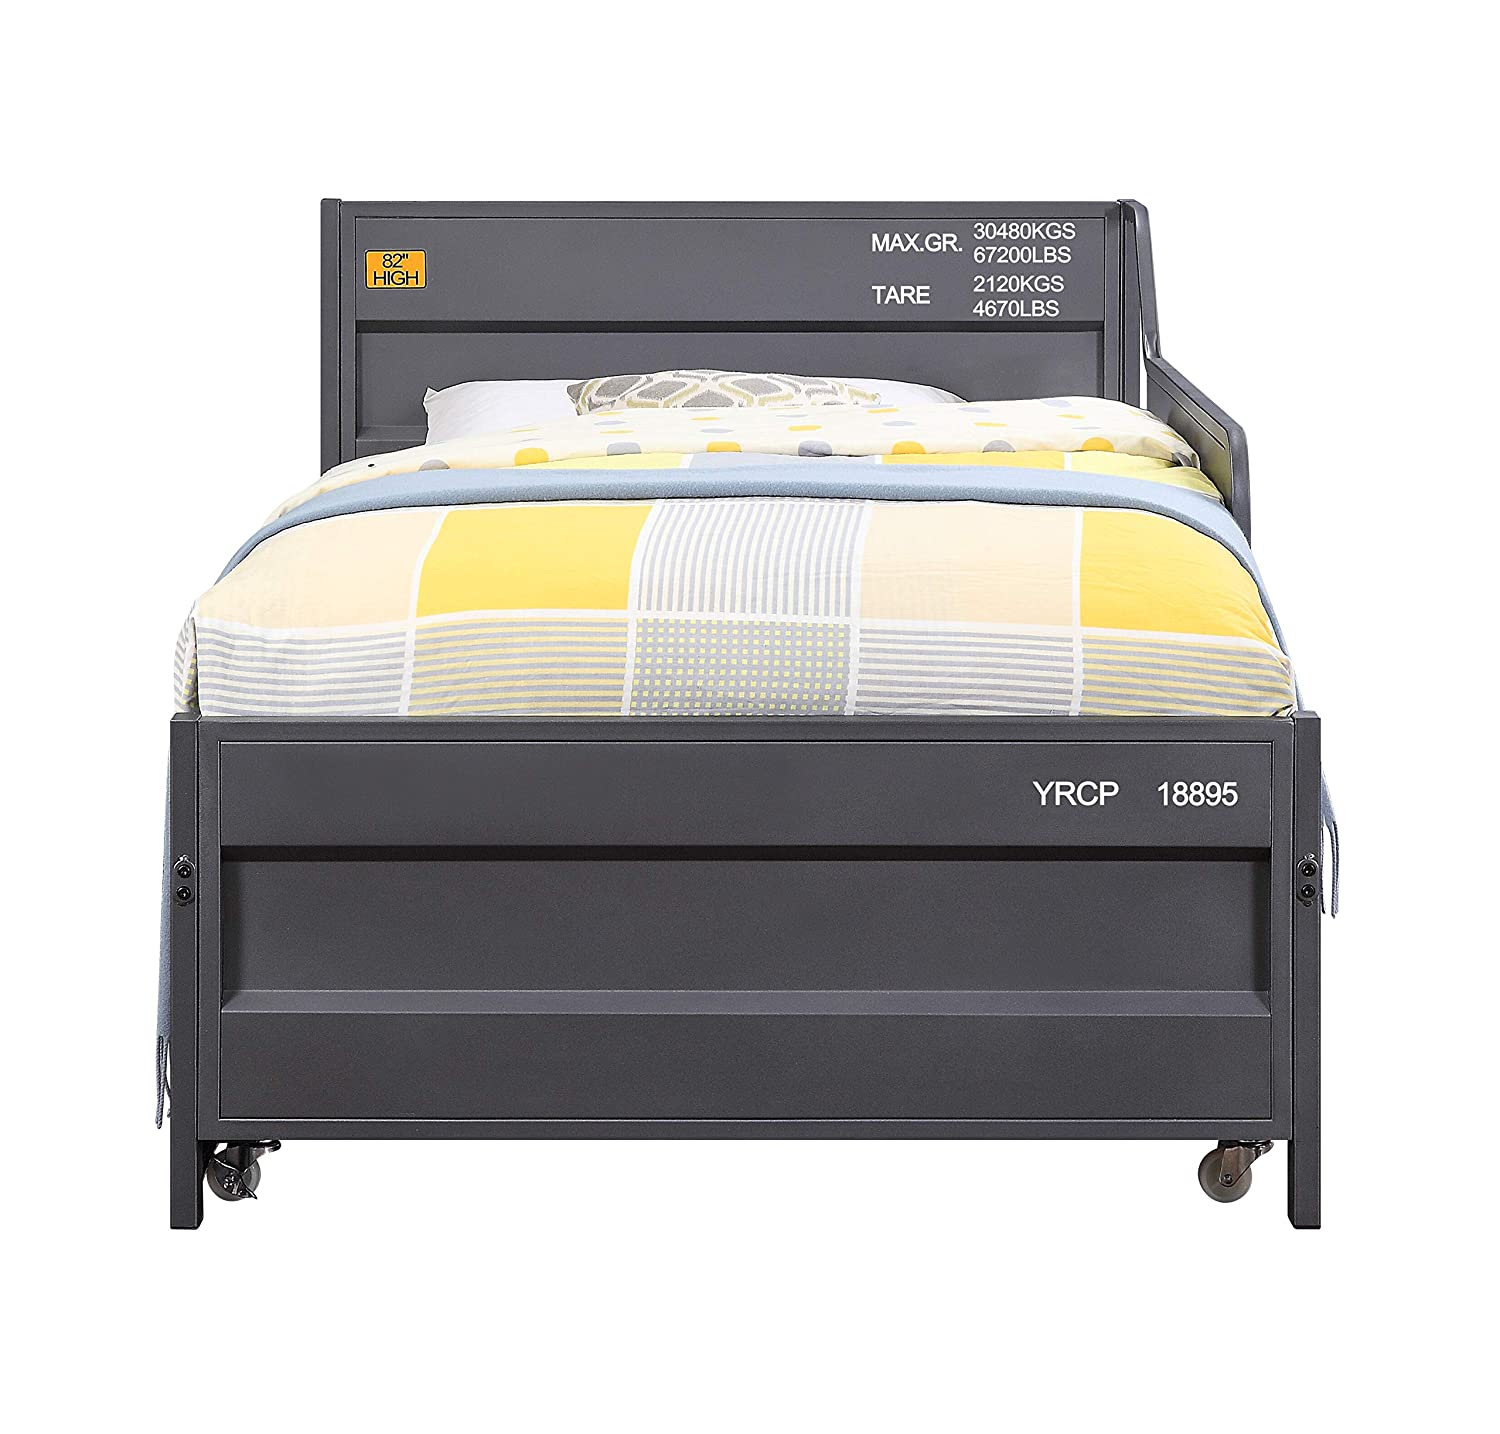 Amazon.com: ACME Furniture 39885 Cargo - Cama de día, color ...